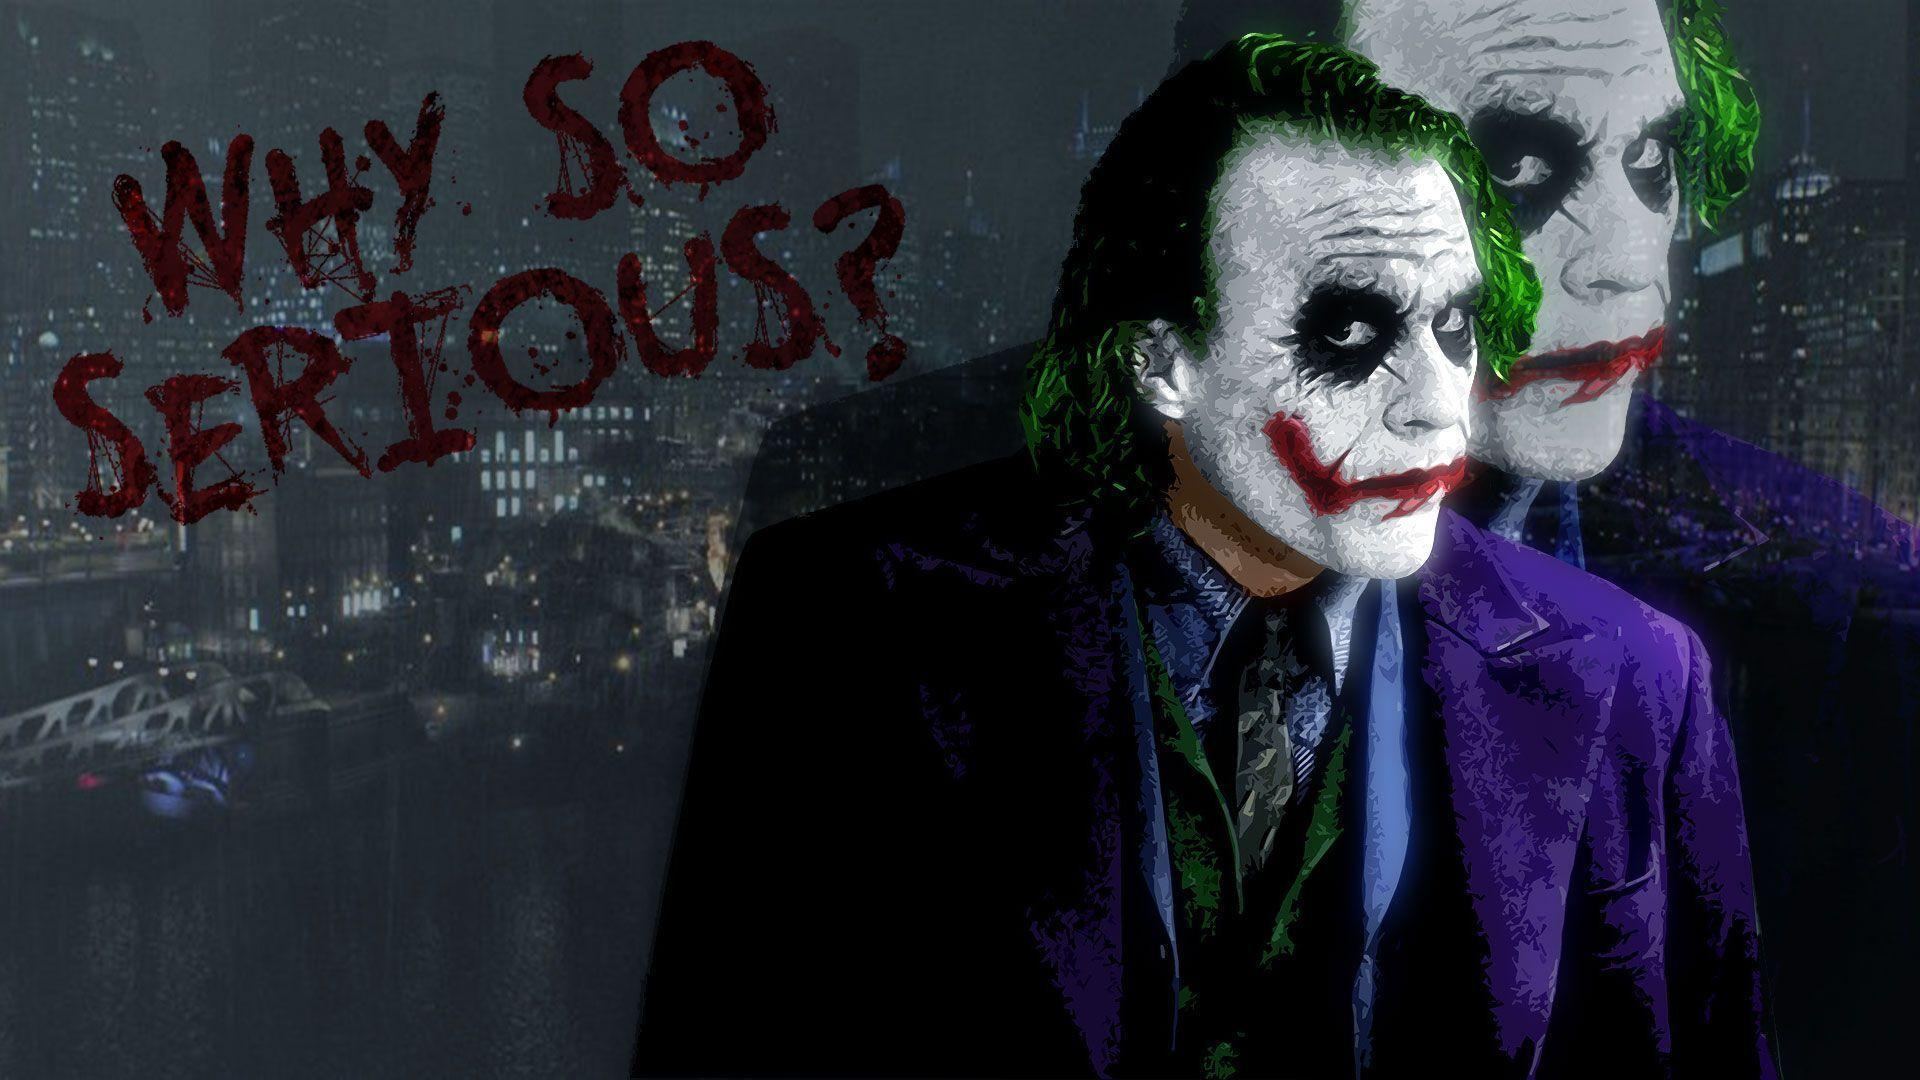 Batman Joker Wallpapers - Wallpaper Cave